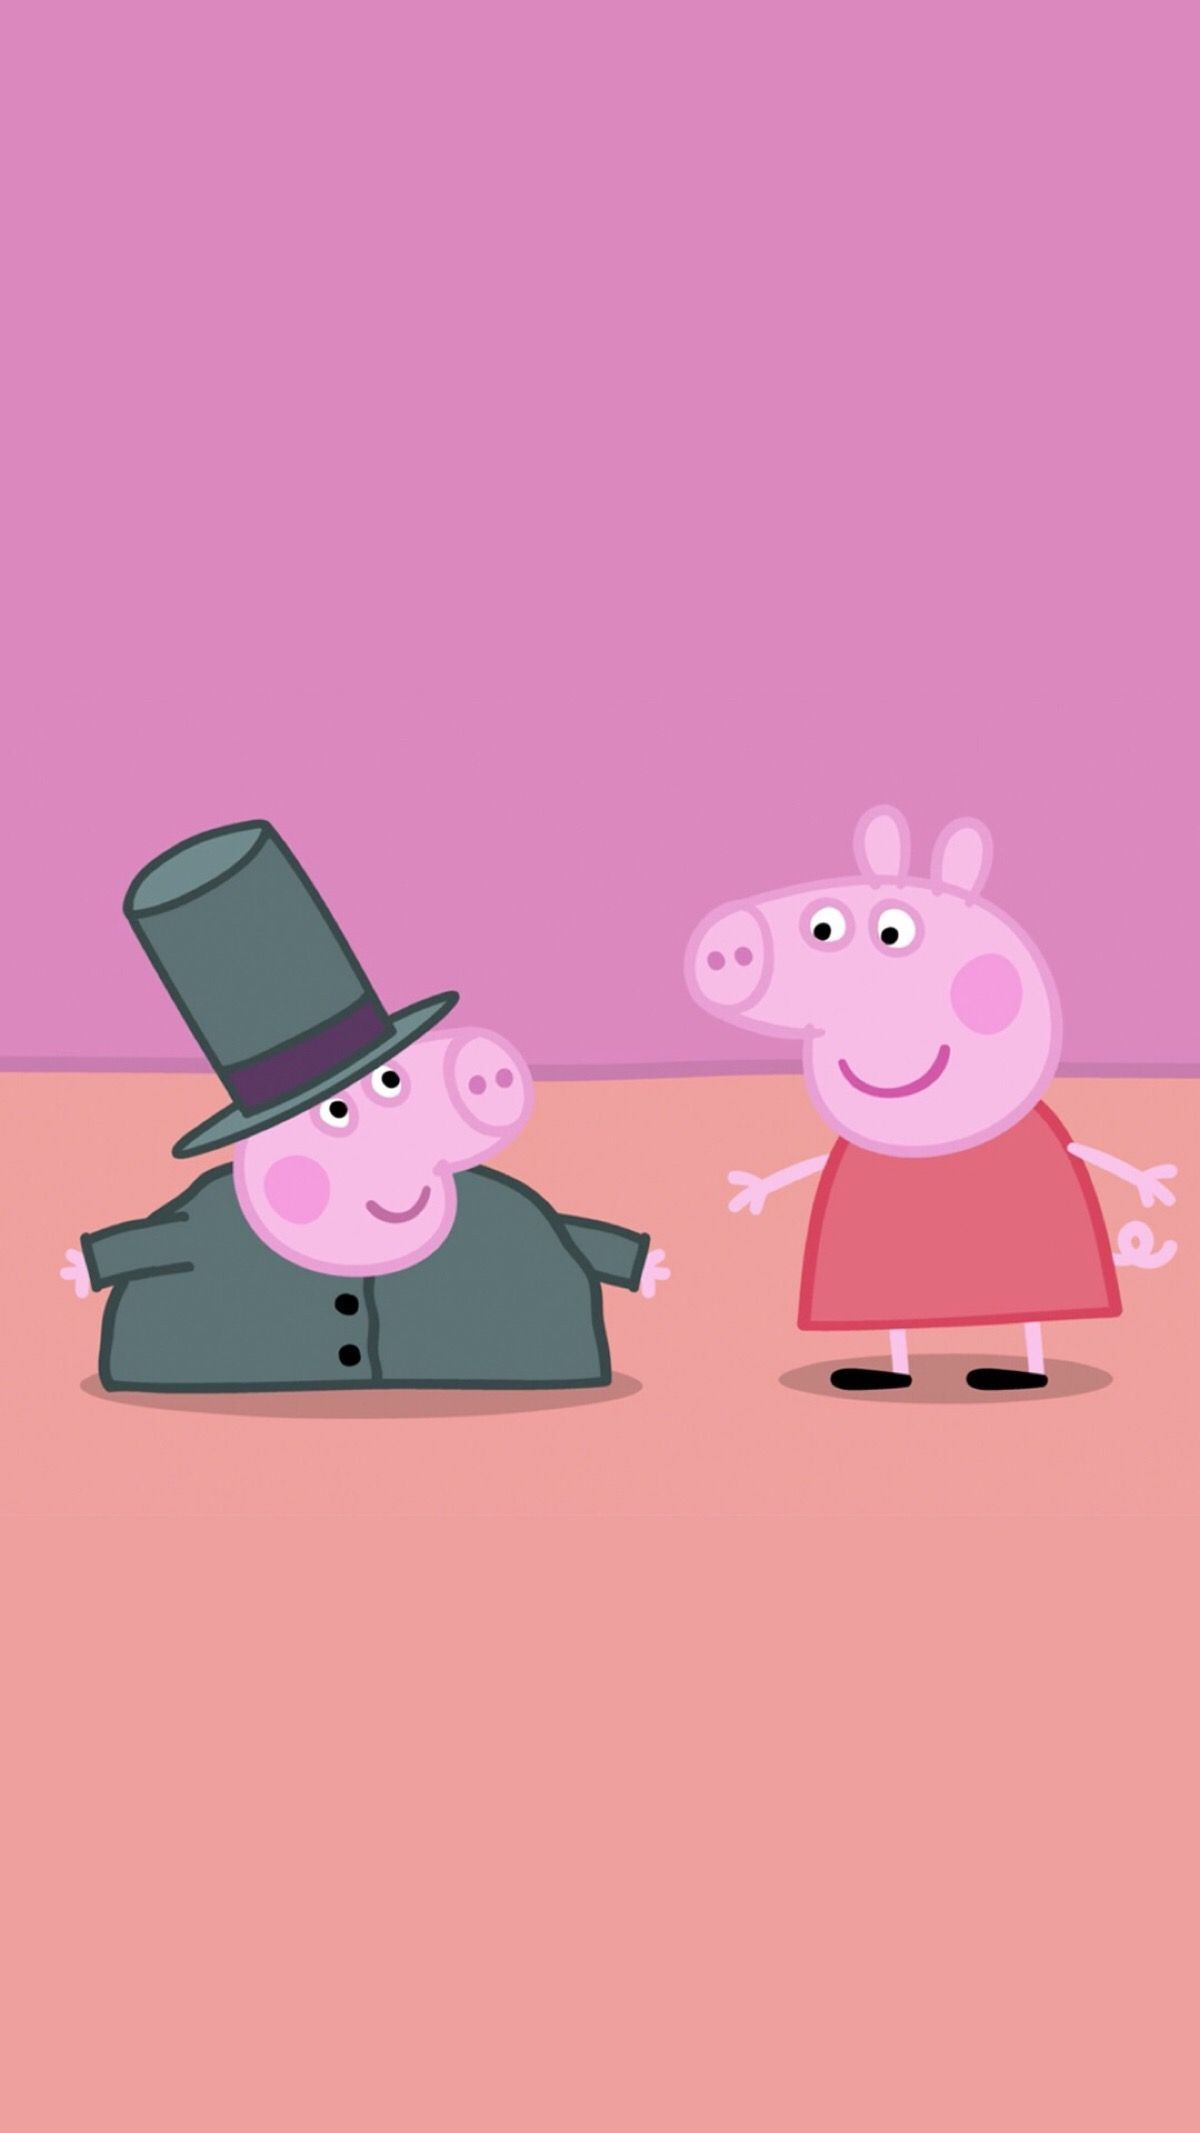 Peppa Pig Wallpaper What Are You Doing On My Phone 3d Wallpapers Peppa Pig Wallpaper Pig Wallpaper Peppa Pig Background